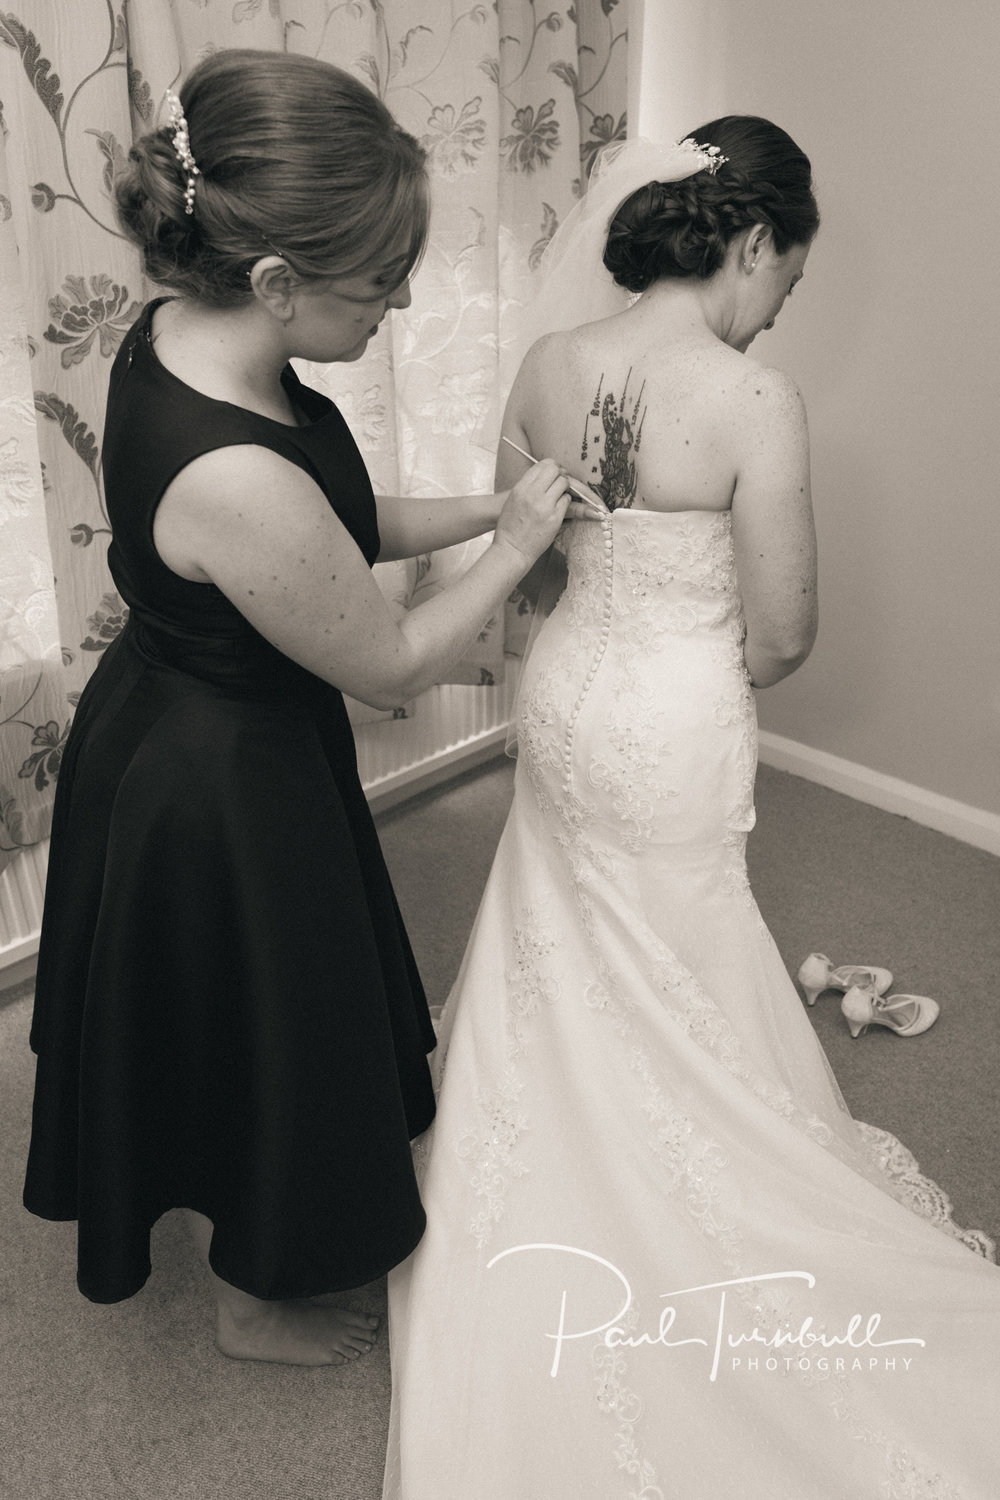 wedding-photographer-south-dalton-walkington-yorkshire-emma-james-014.jpg